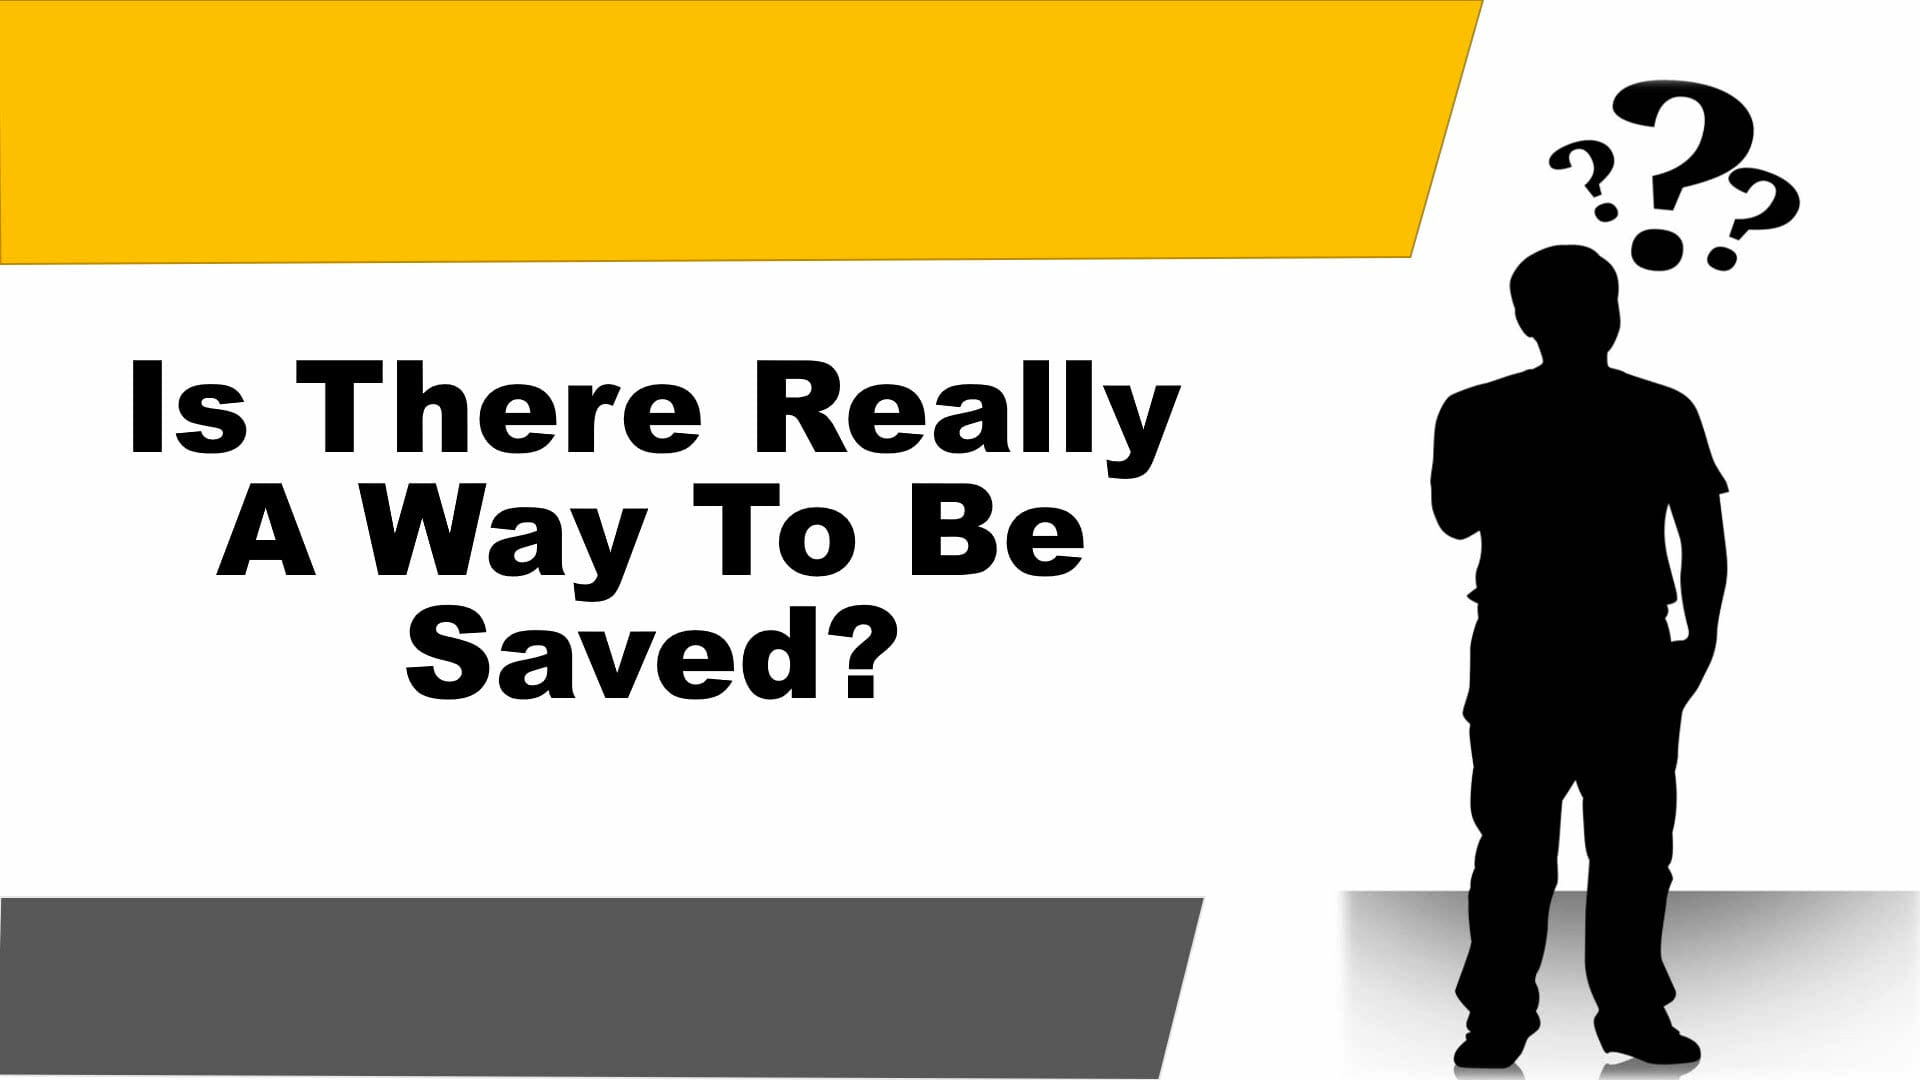 Is There Really A Way To Be Saved?